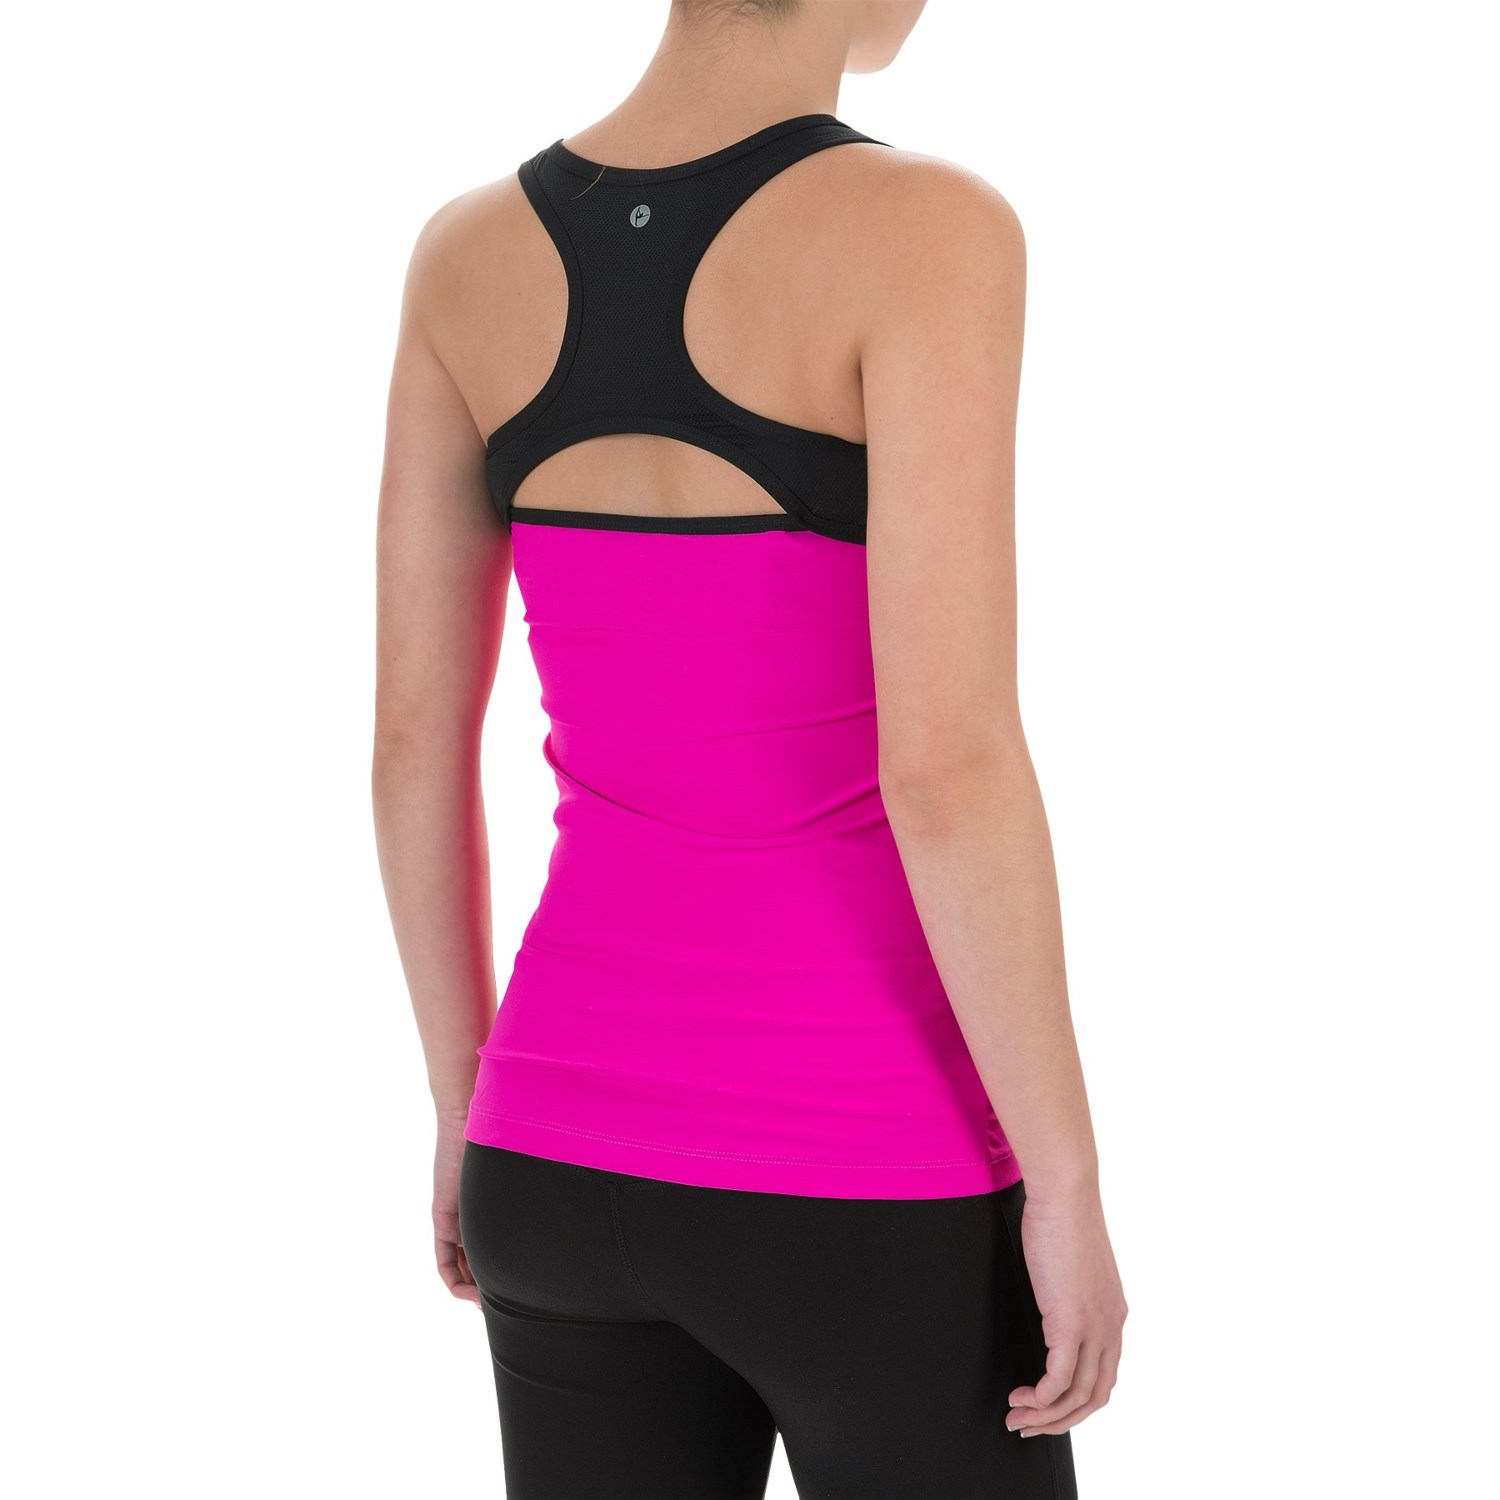 179cn 2 90 degree by reflex skye tank top racerback for women